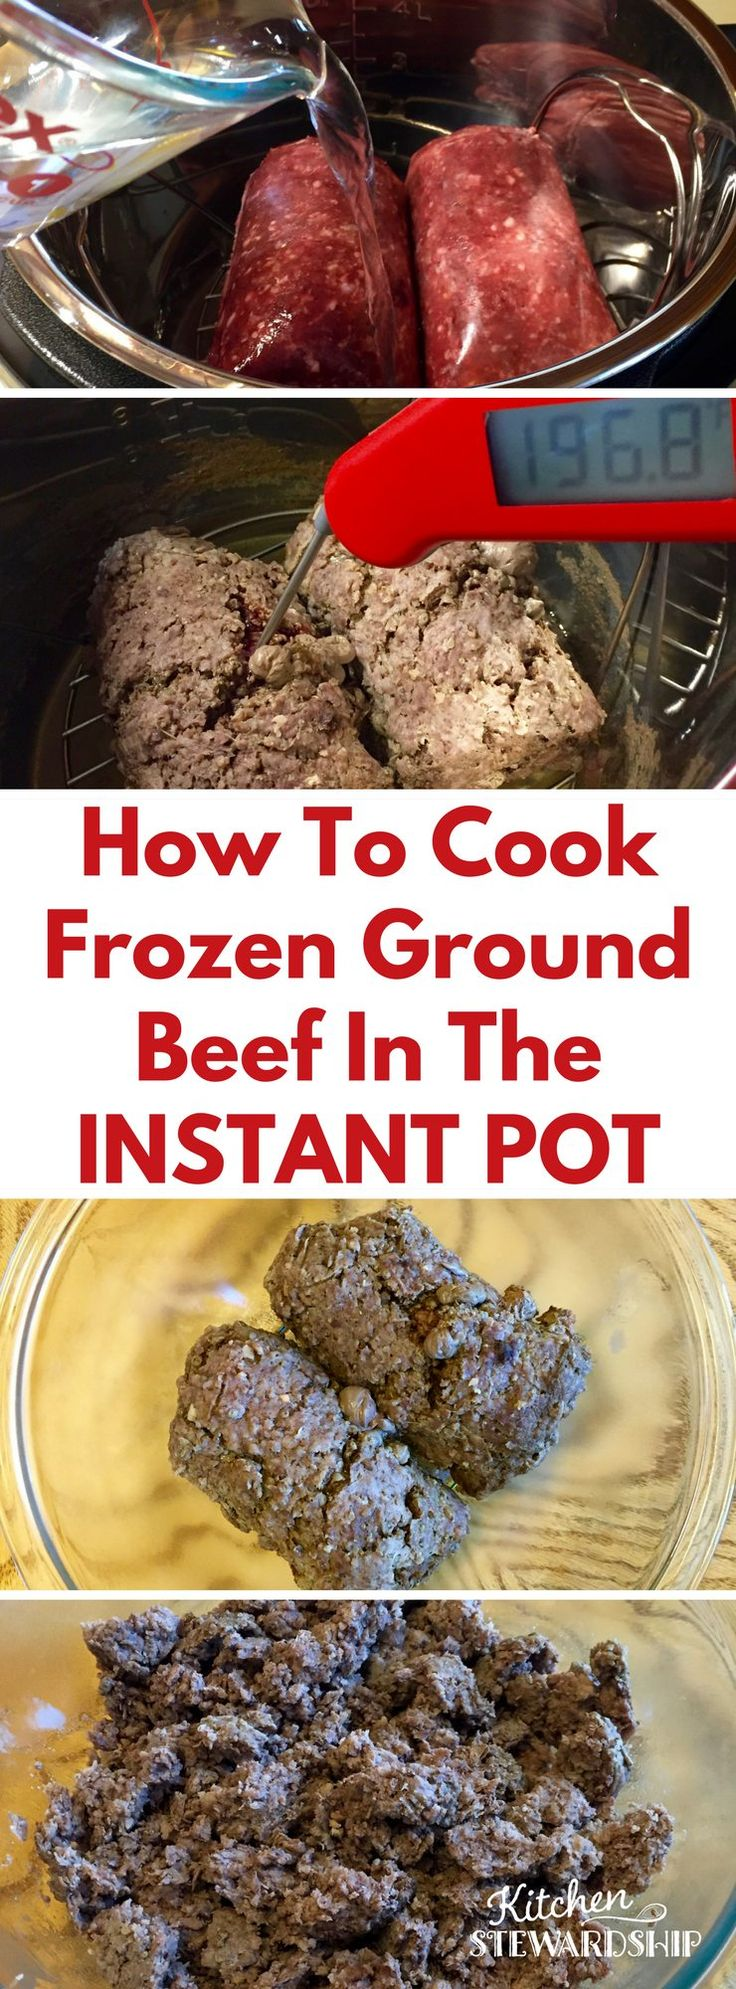 Forgot to thaw your frozen ground beef? Never fear! The Instant Pot is here! You can cook up to 5 pounds of easy, amazing ground beef in your electric pressure cooker even if it's FROZEN!